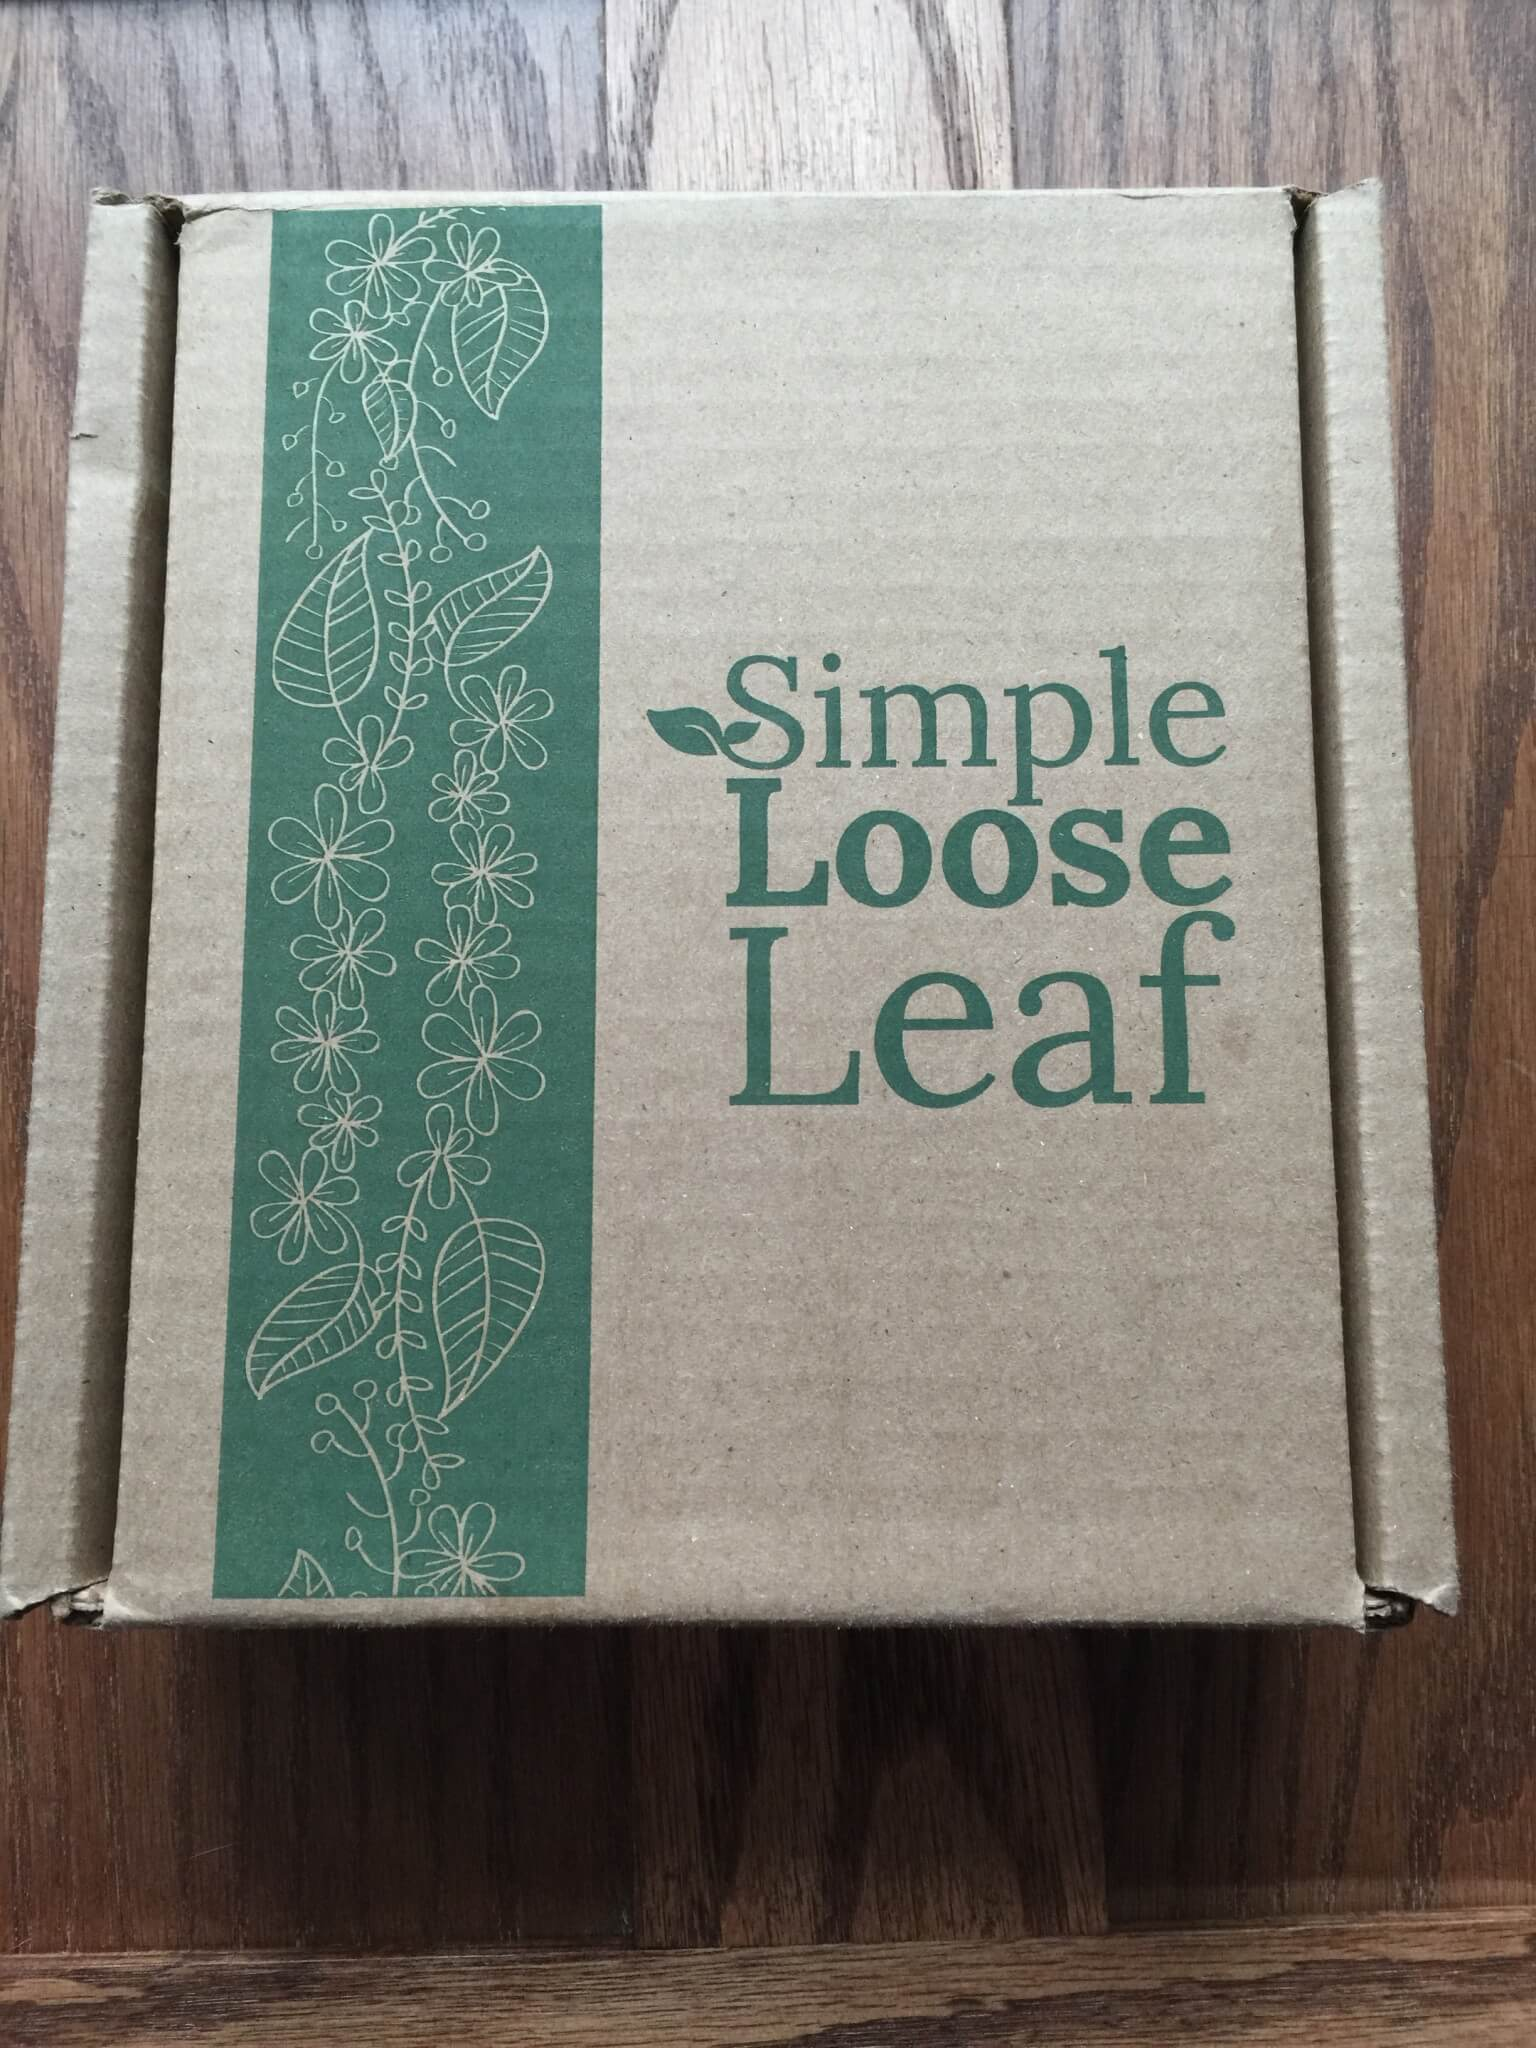 Simple Loose Leaf Tea March 2016 Subscription Box Review + Coupon – First box $3.99